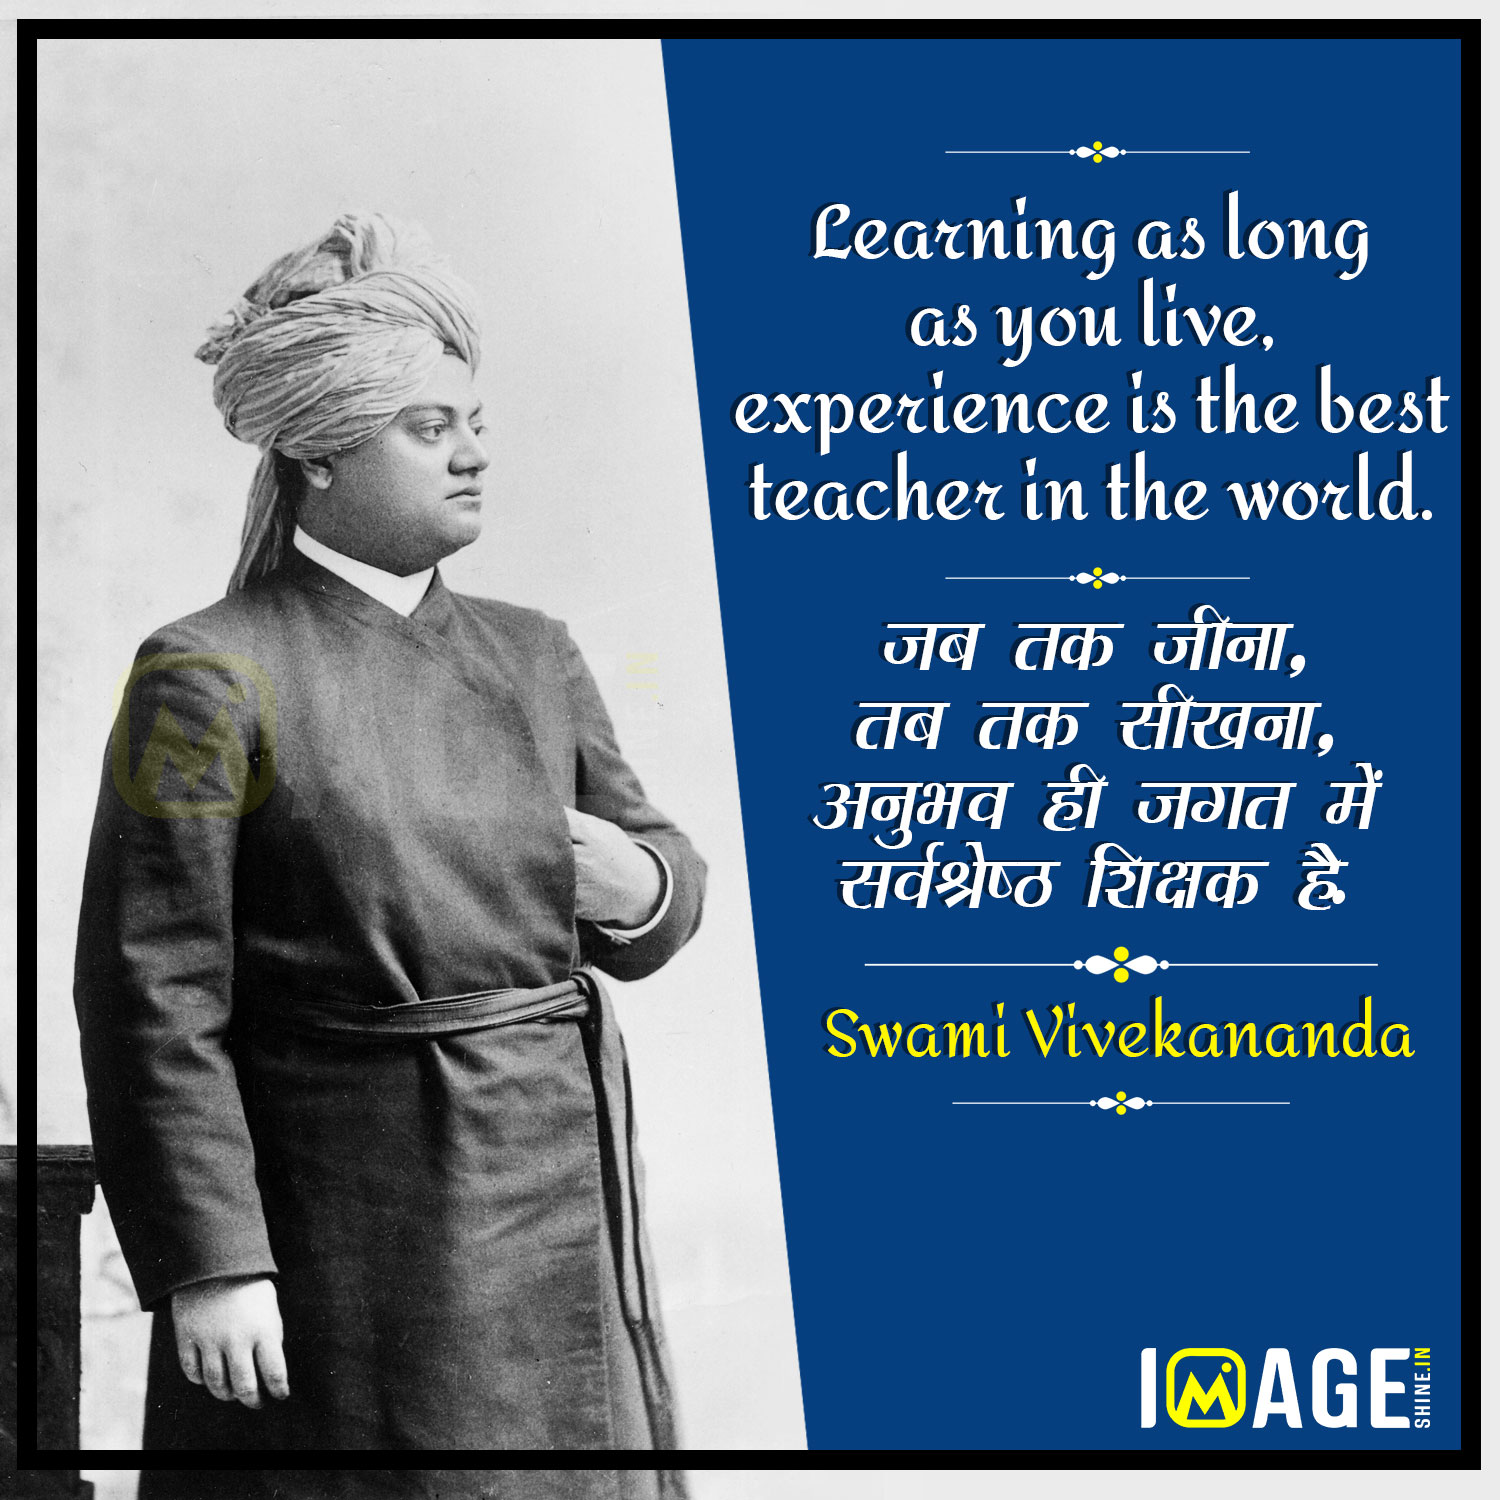 Swami vivekananda quote on Life